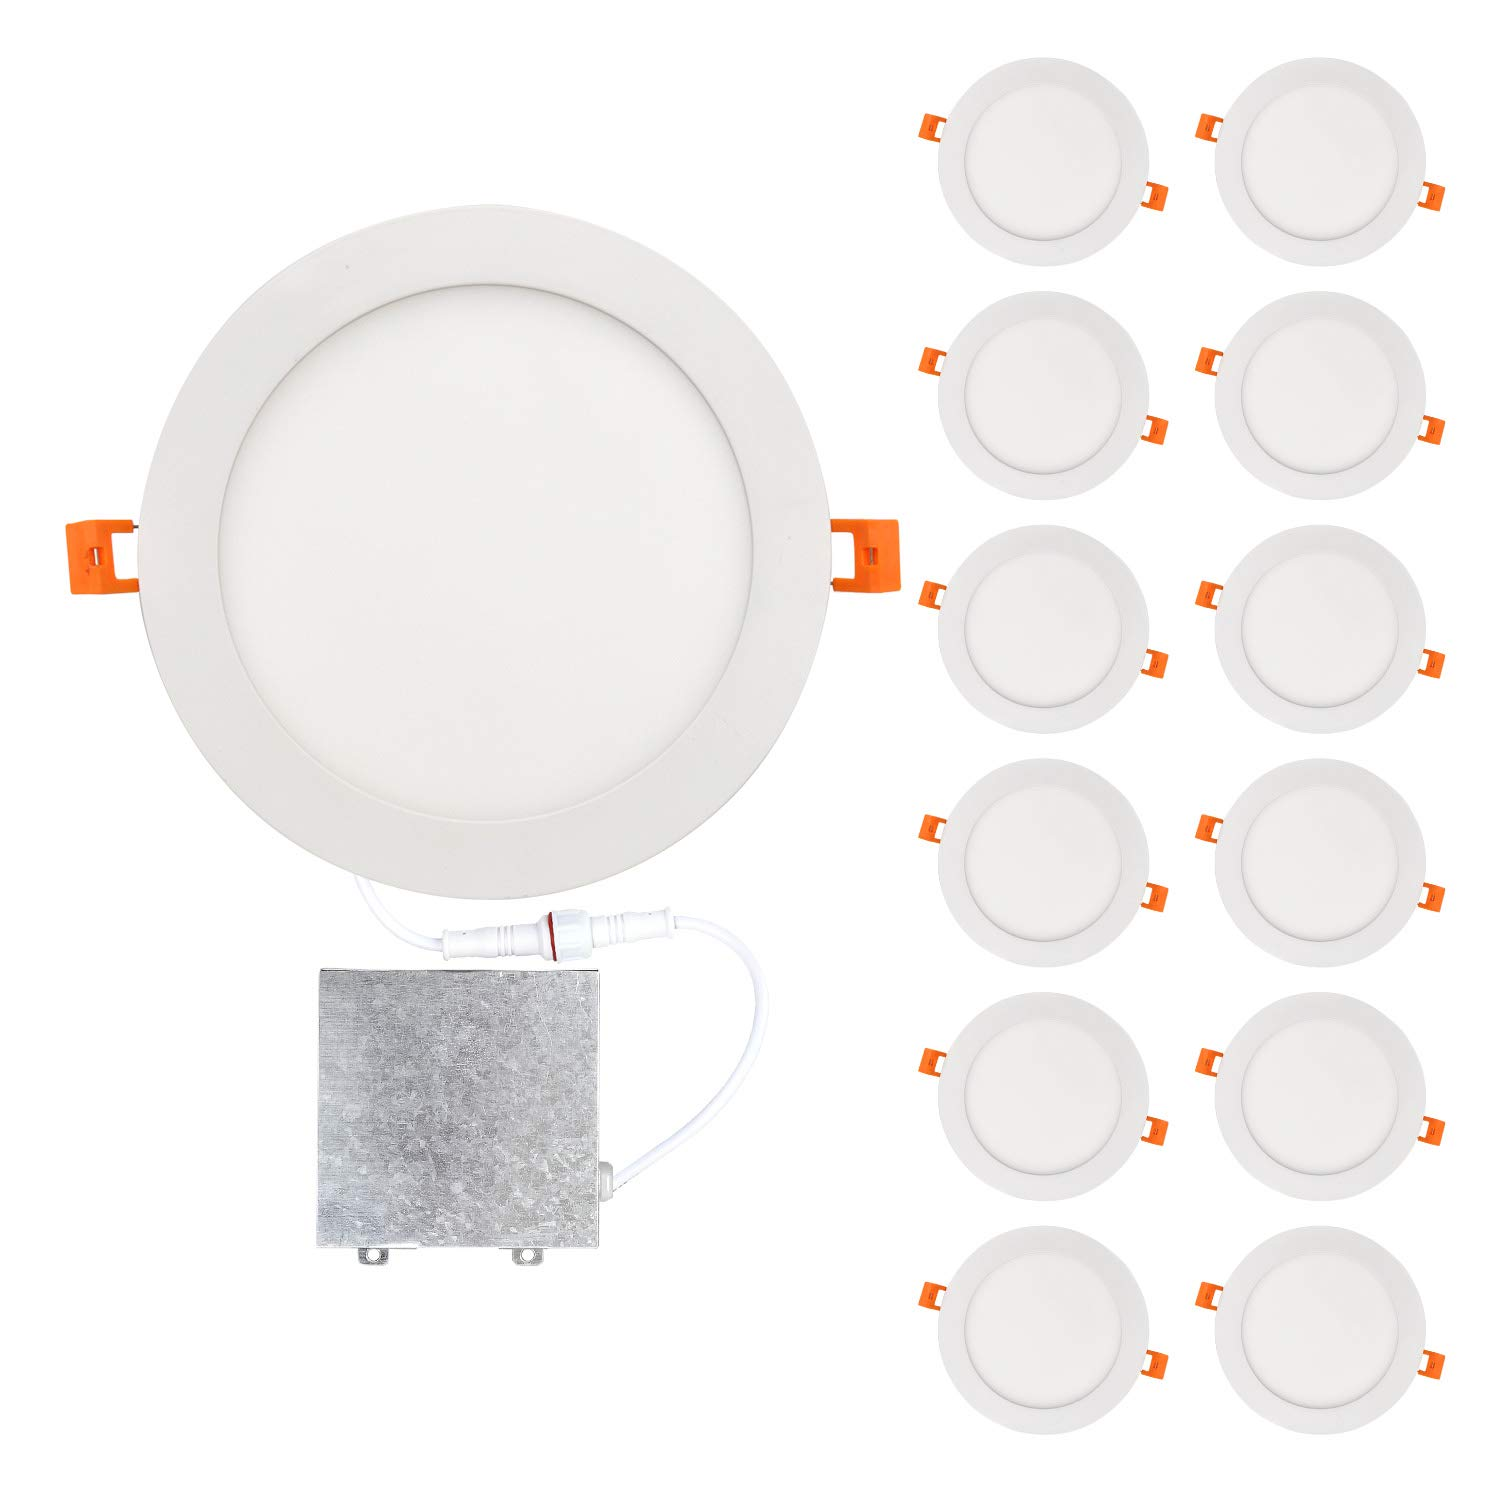 OSTWIN 8 inch 18W (90 Watt Repl.) IC Rated LED Recessed Low Profile Slim Round Panel Light with Junction Box, Dimmable, 3000K Warm Light 1350 Lm. No Can Needed, 12 Pack ETL & Energy Star Listed